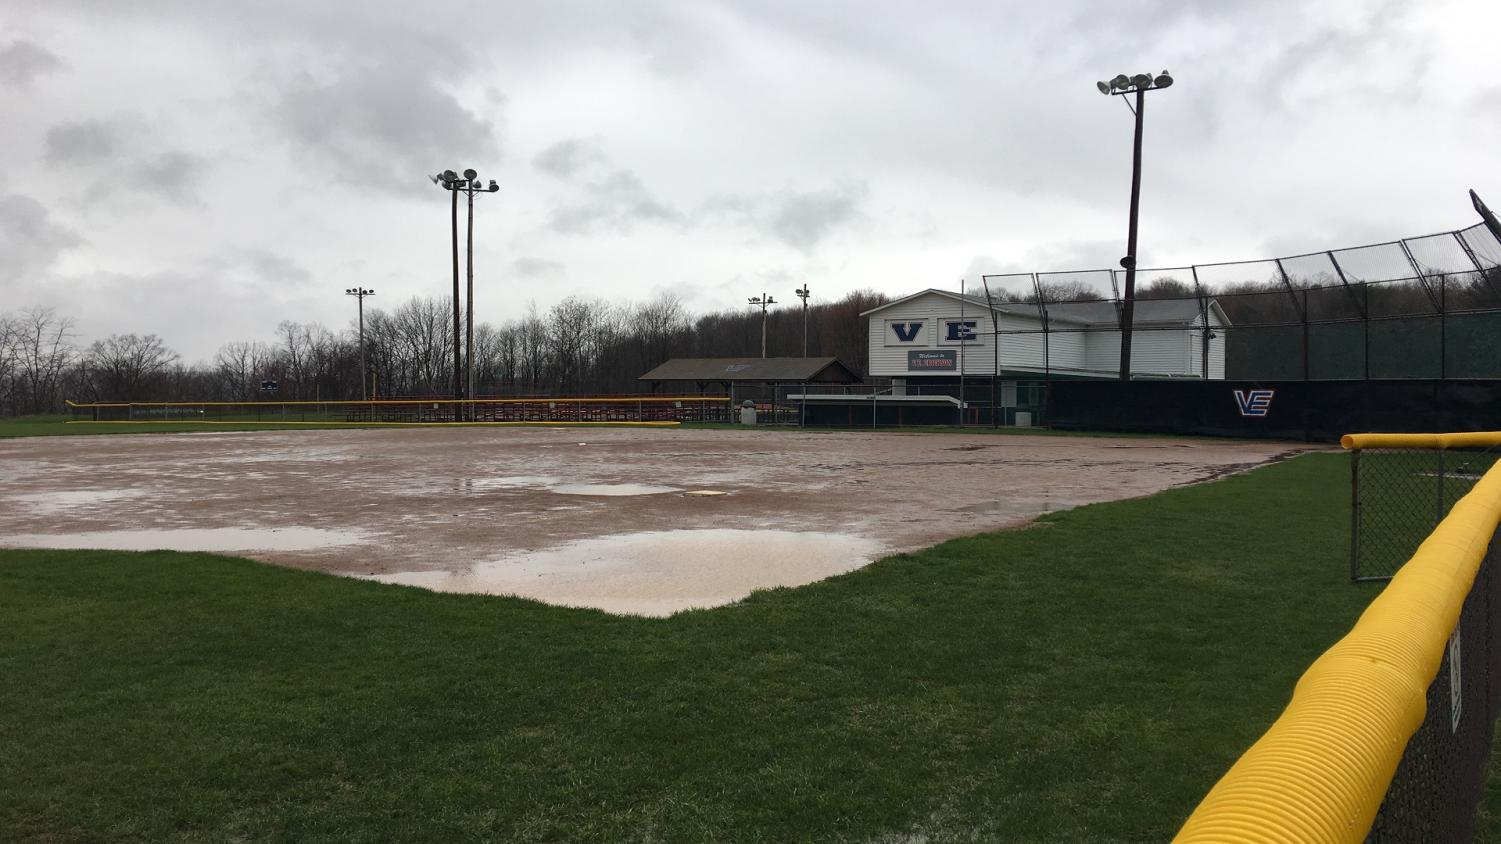 The field at the V.E. Erickson Complex along Eisenhower Boulevard was flooded Friday and  led to a postponement of a doubleheader against Lock Haven University that day. It was the 12th postponement or cancellation for the team this season.